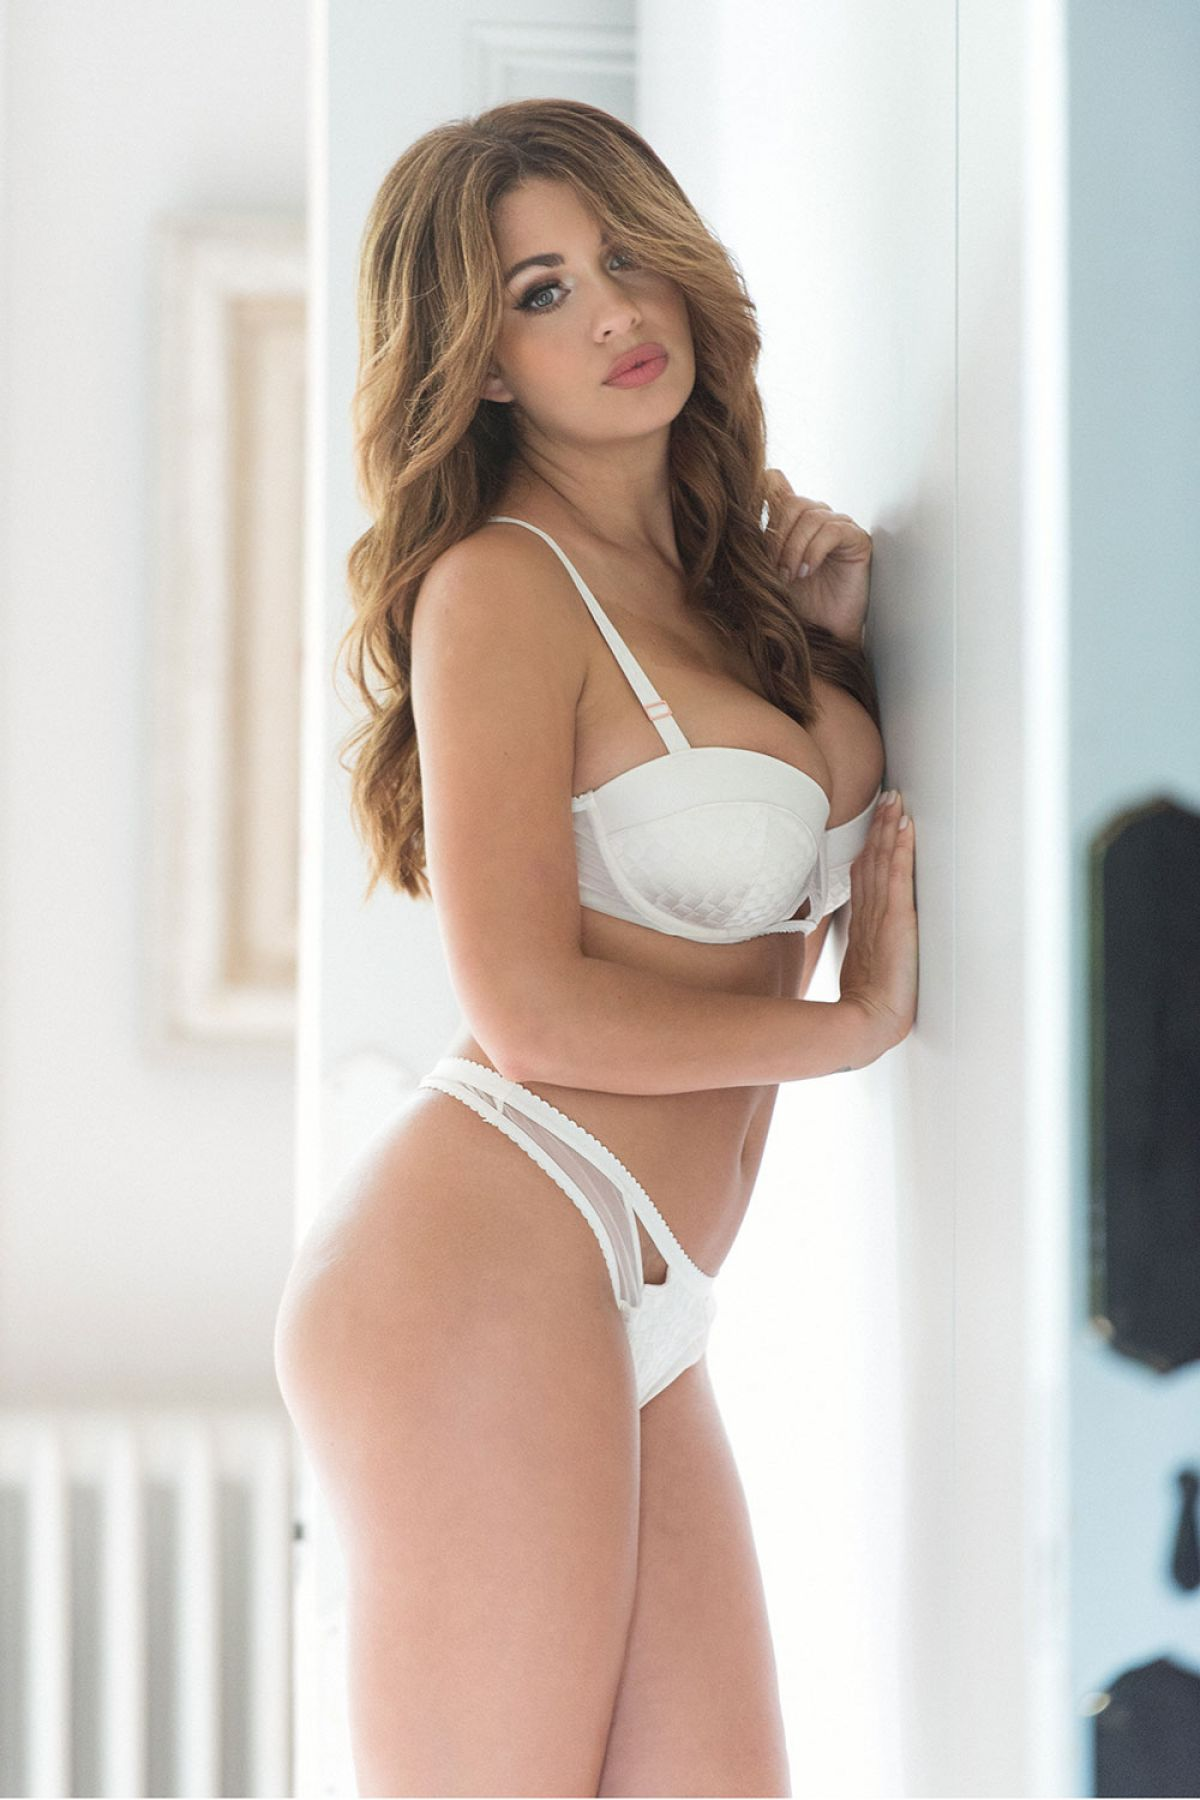 Holly Peers  Page 3  8th october 2016  Celebzz